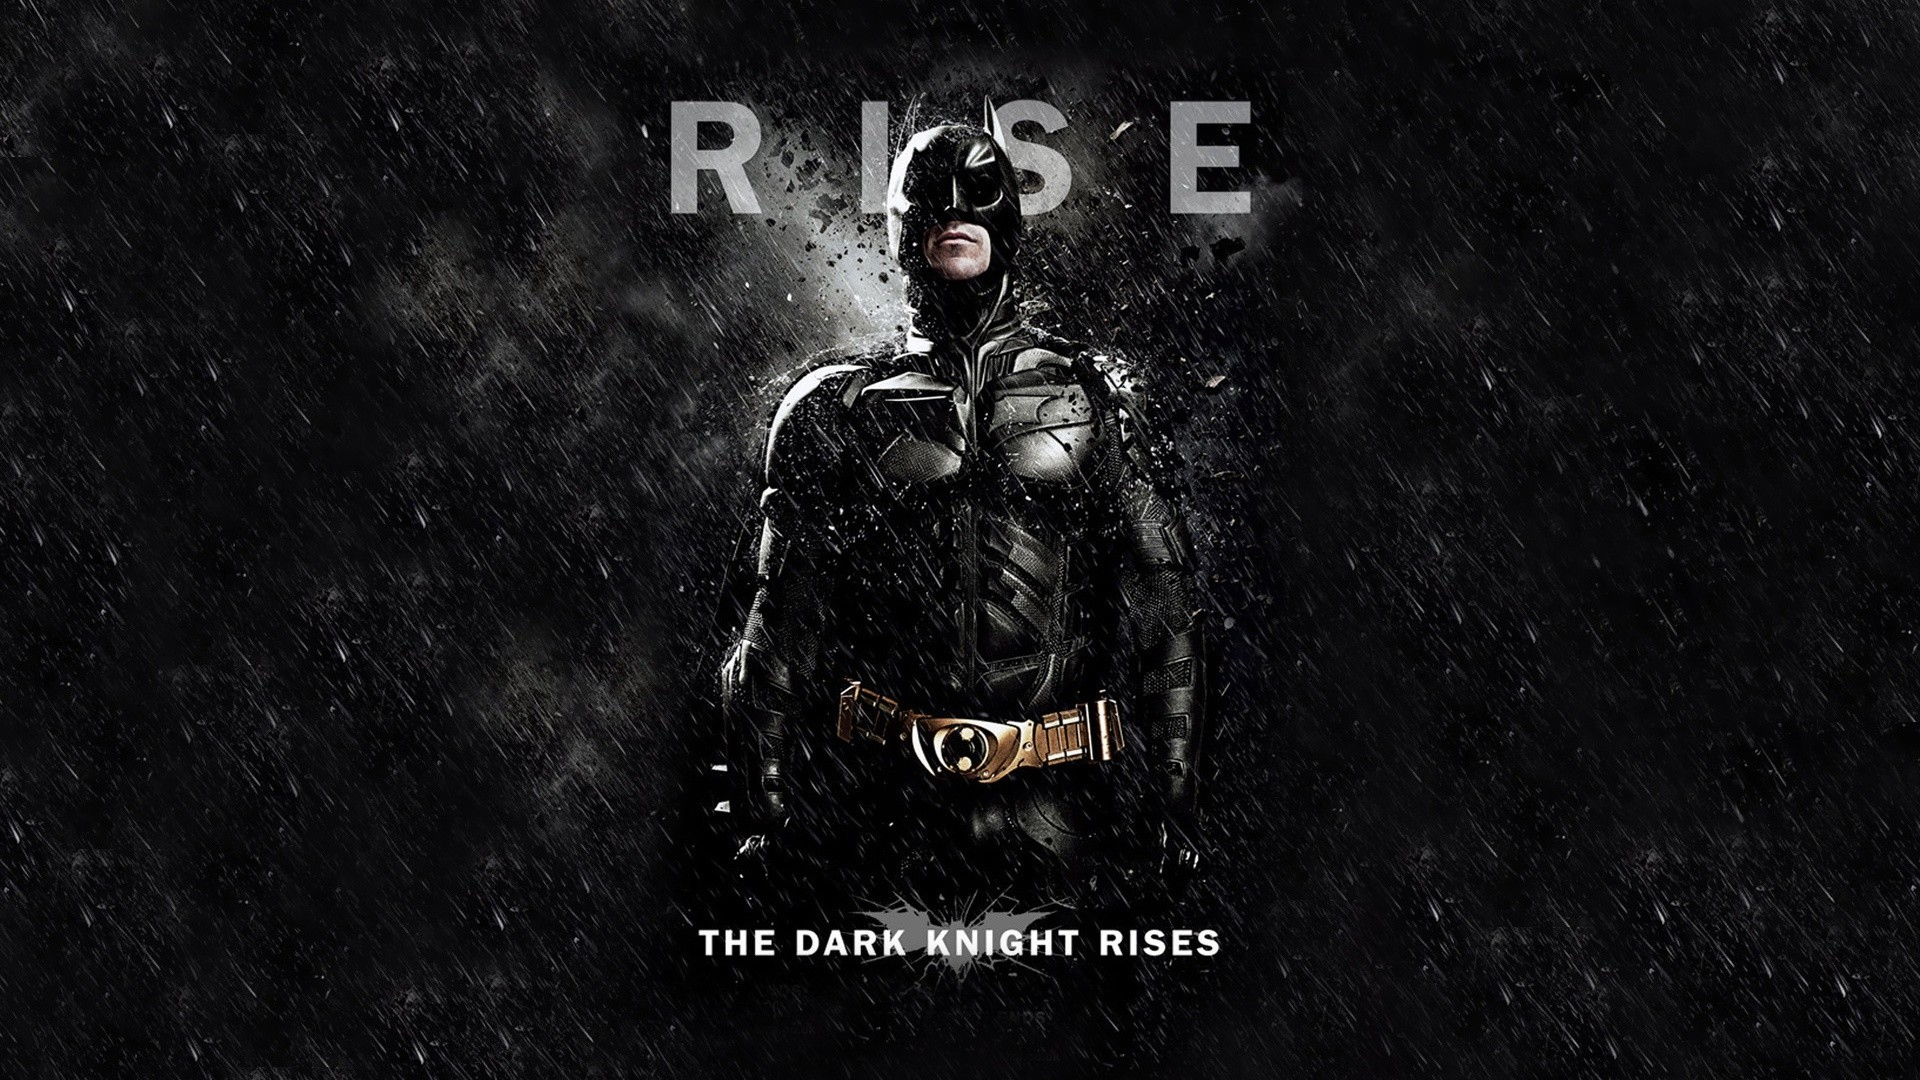 the dark knight rises wallpaper hd 1920x1080 183��